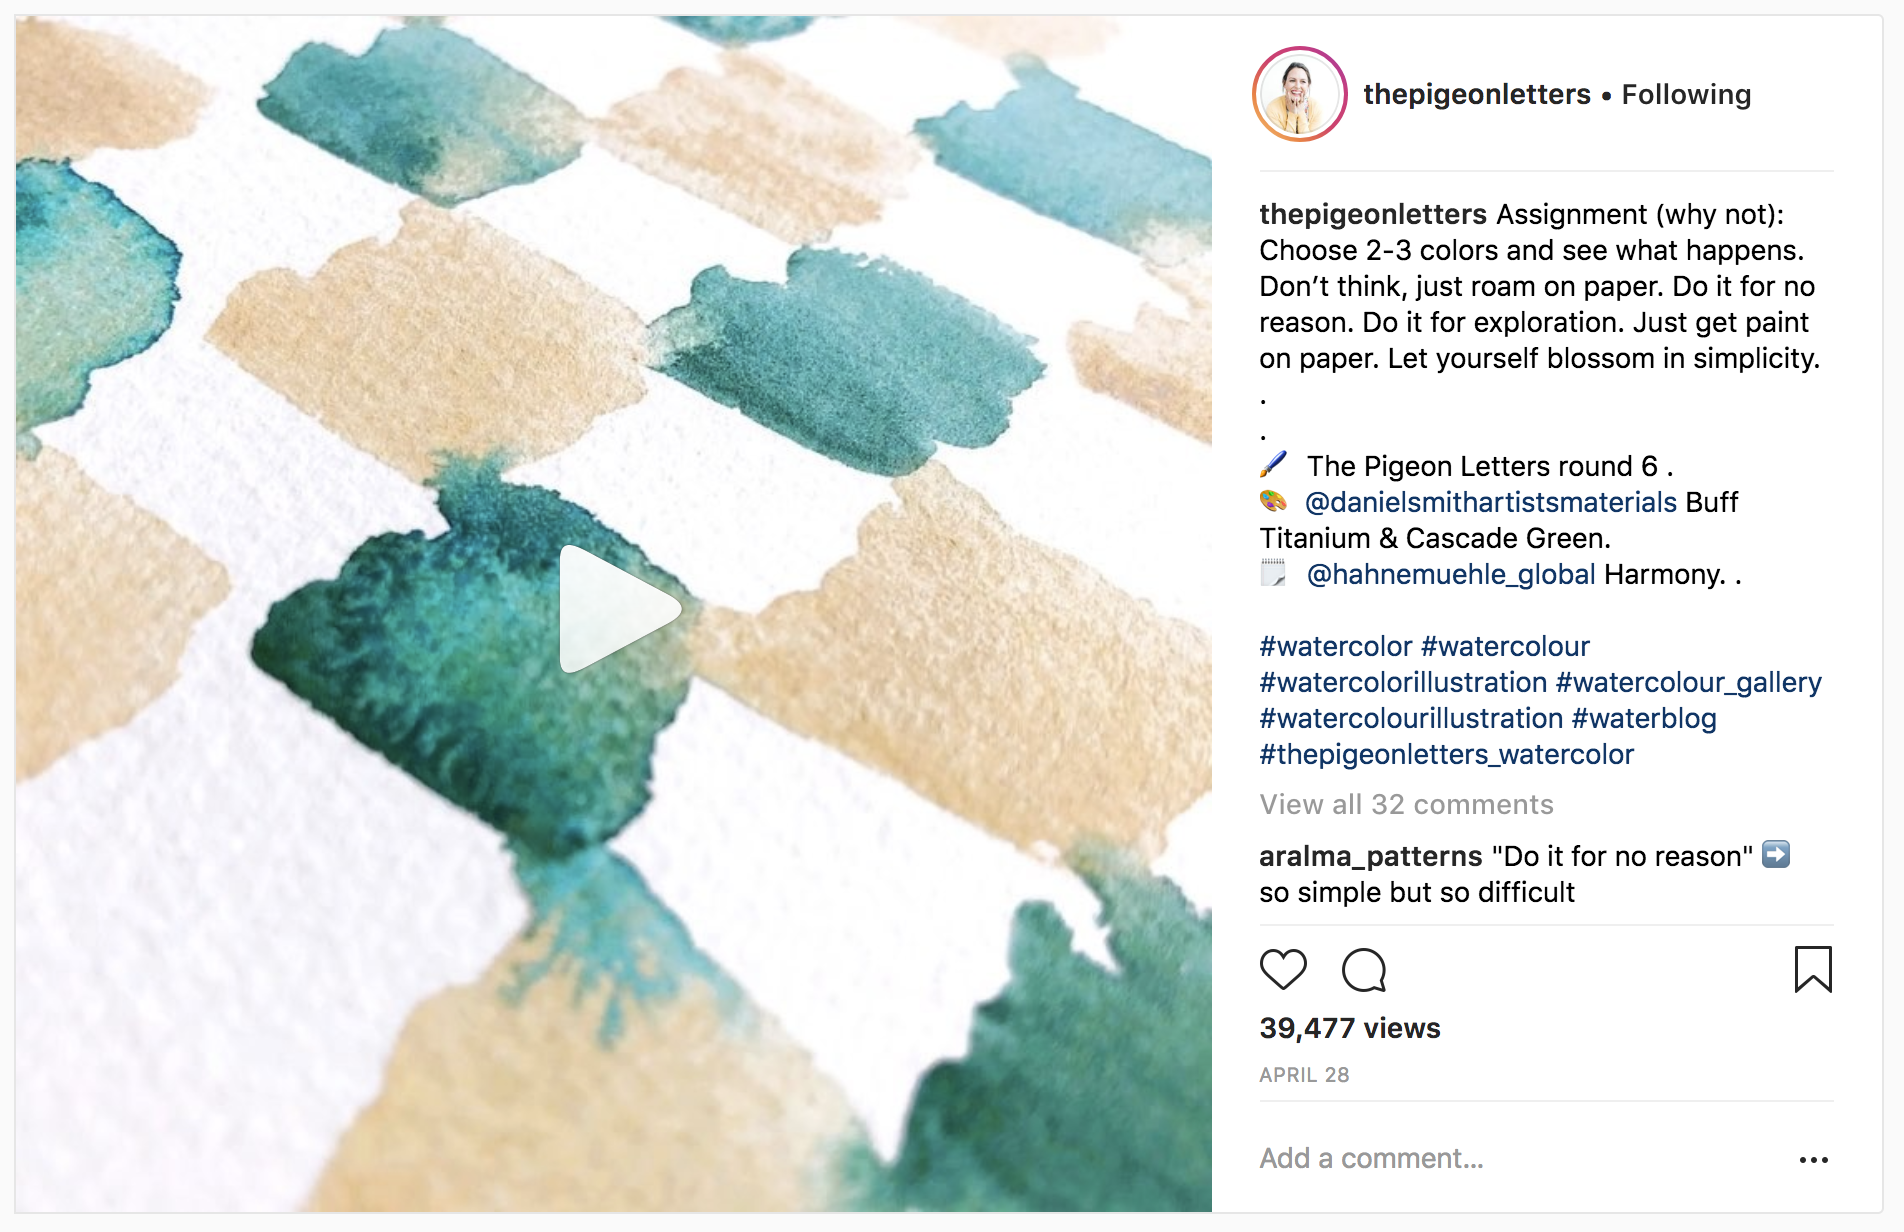 10 Watercolor Artist Inspiration Accounts to Follow: thepigeonletters